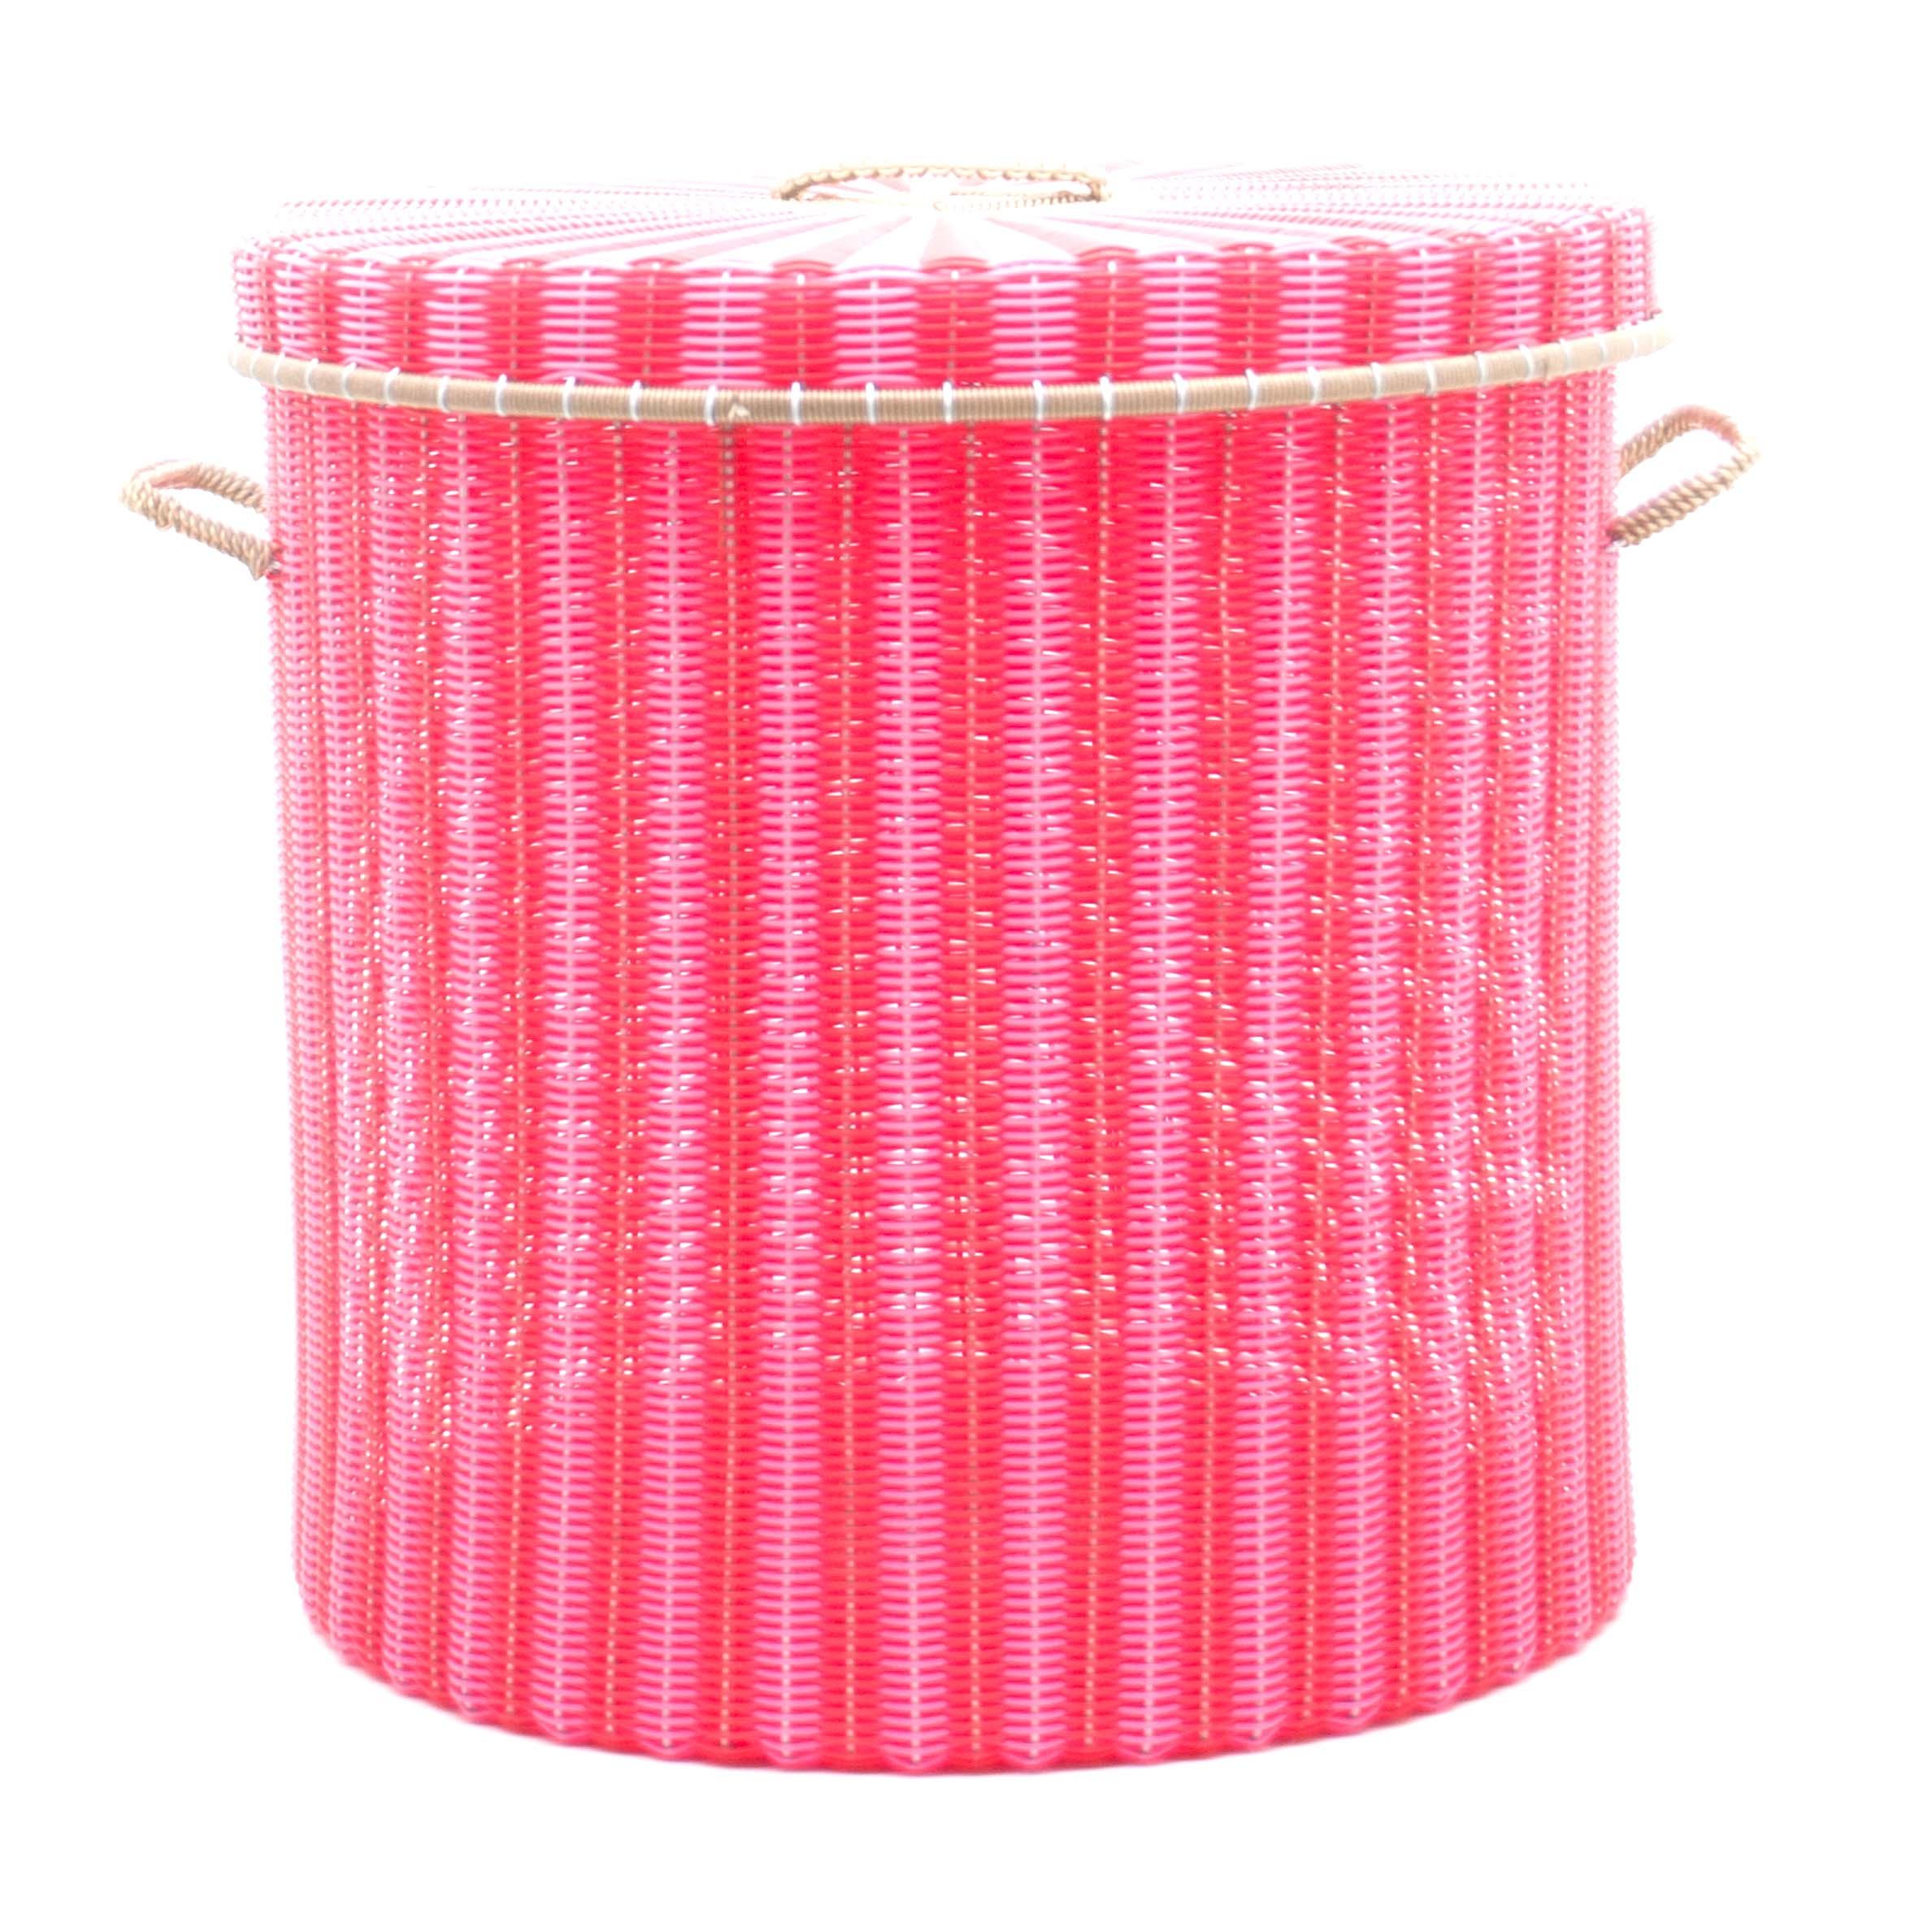 pink red storage basket